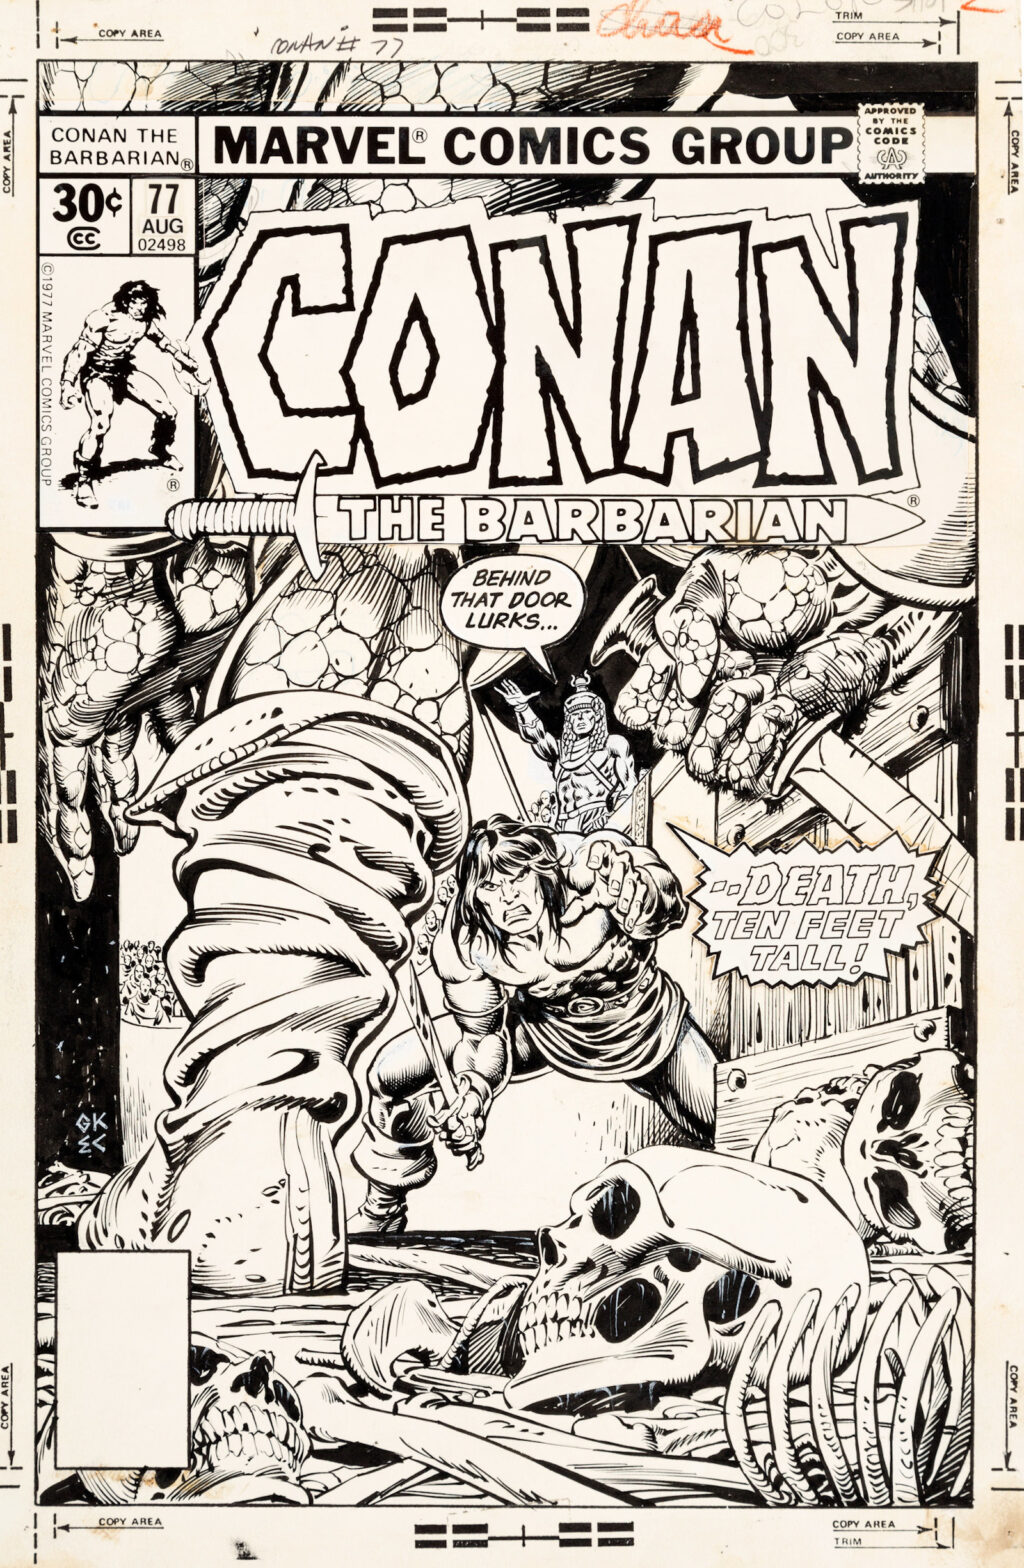 Conan the Barbarian issue 77 cover by Gil Kane and Ernie Chan